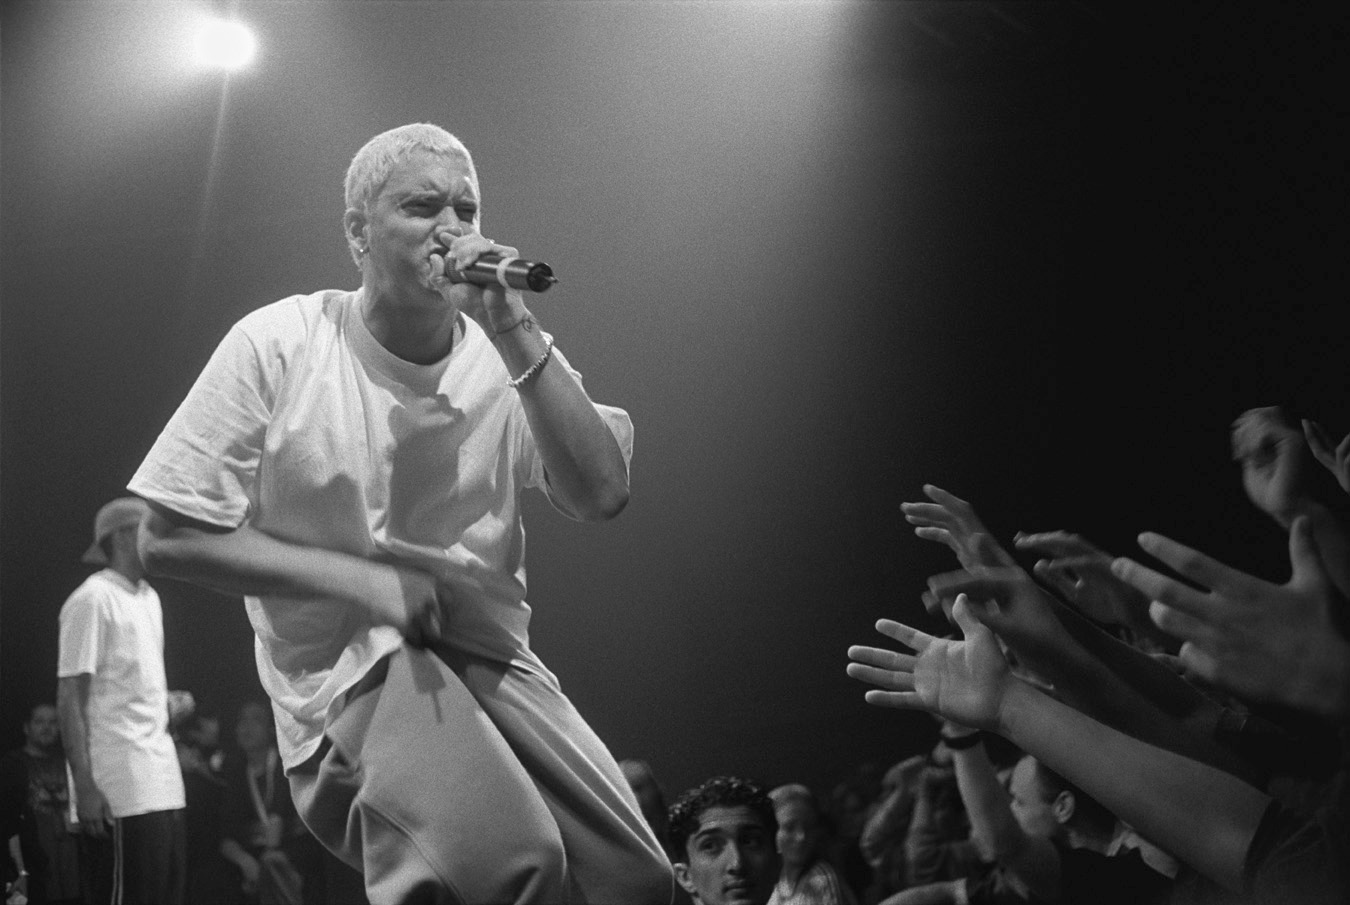 """Like his previous album, """"Kamikaze,"""" Eminem released his eleventh studio album """"Music to be Murdered By"""" on a Thursday night without any prior announcement. The album marked his 24th year in the industry."""